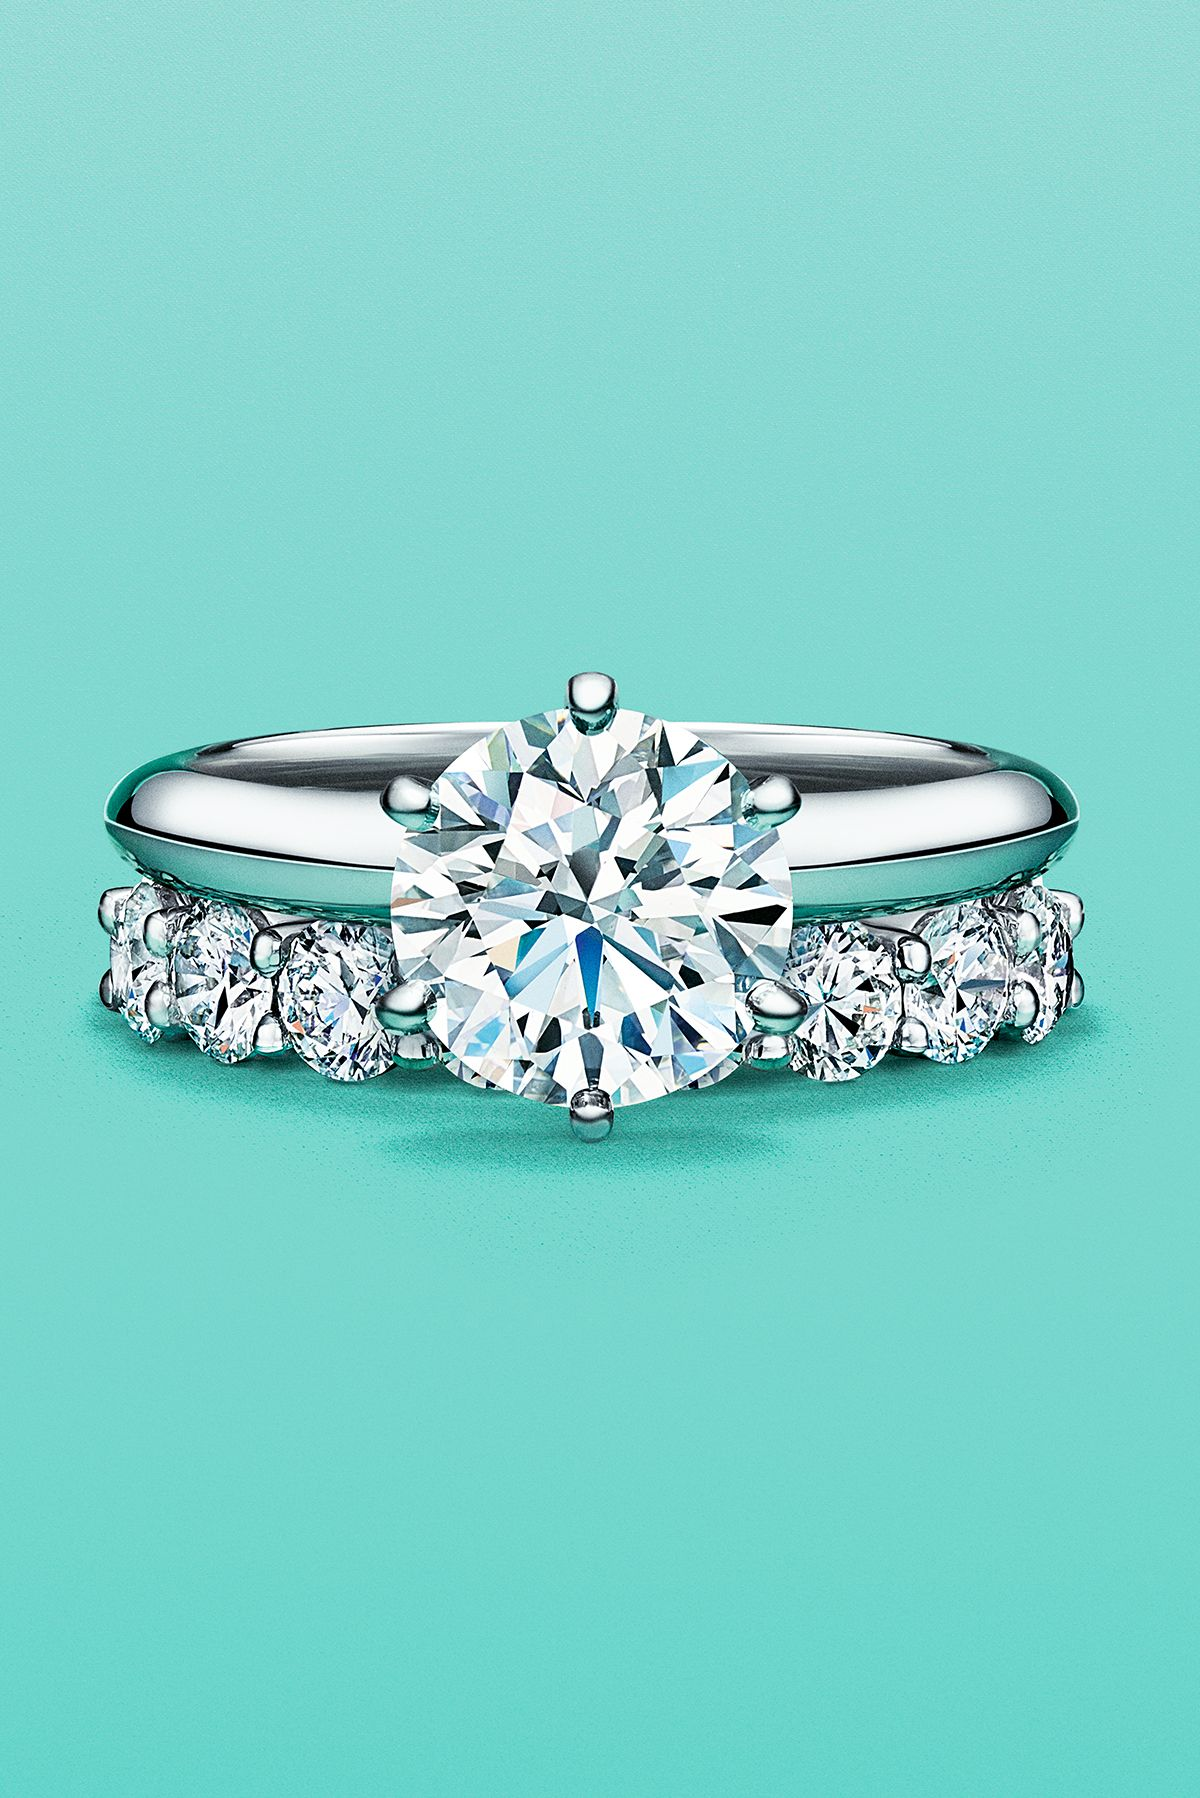 The Tiffany® Setting and Tiffany Embrace® rings in